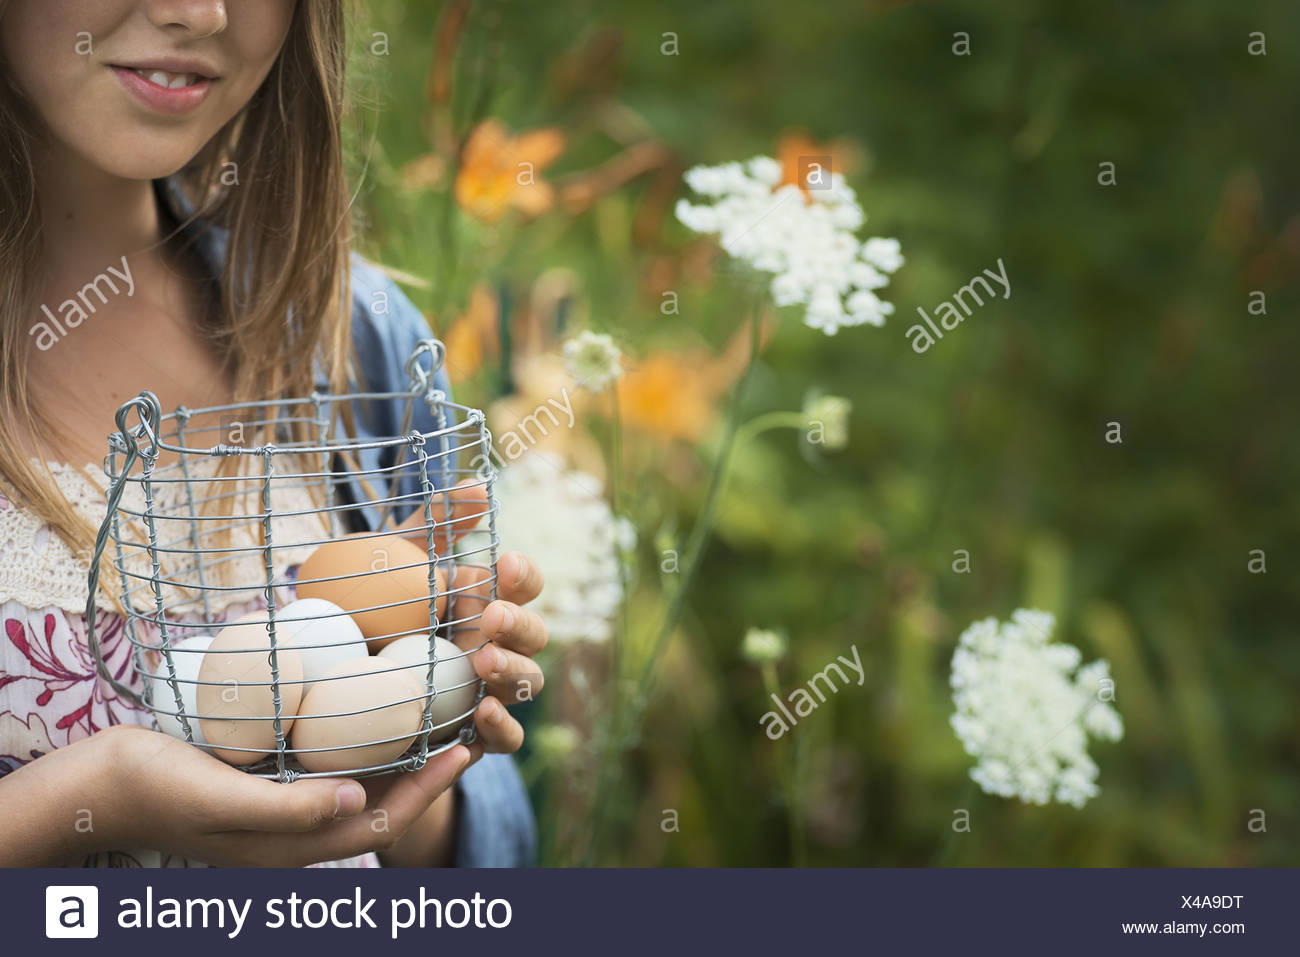 New York state USA person holding basket freshly laid hen's eggs - Stock Image